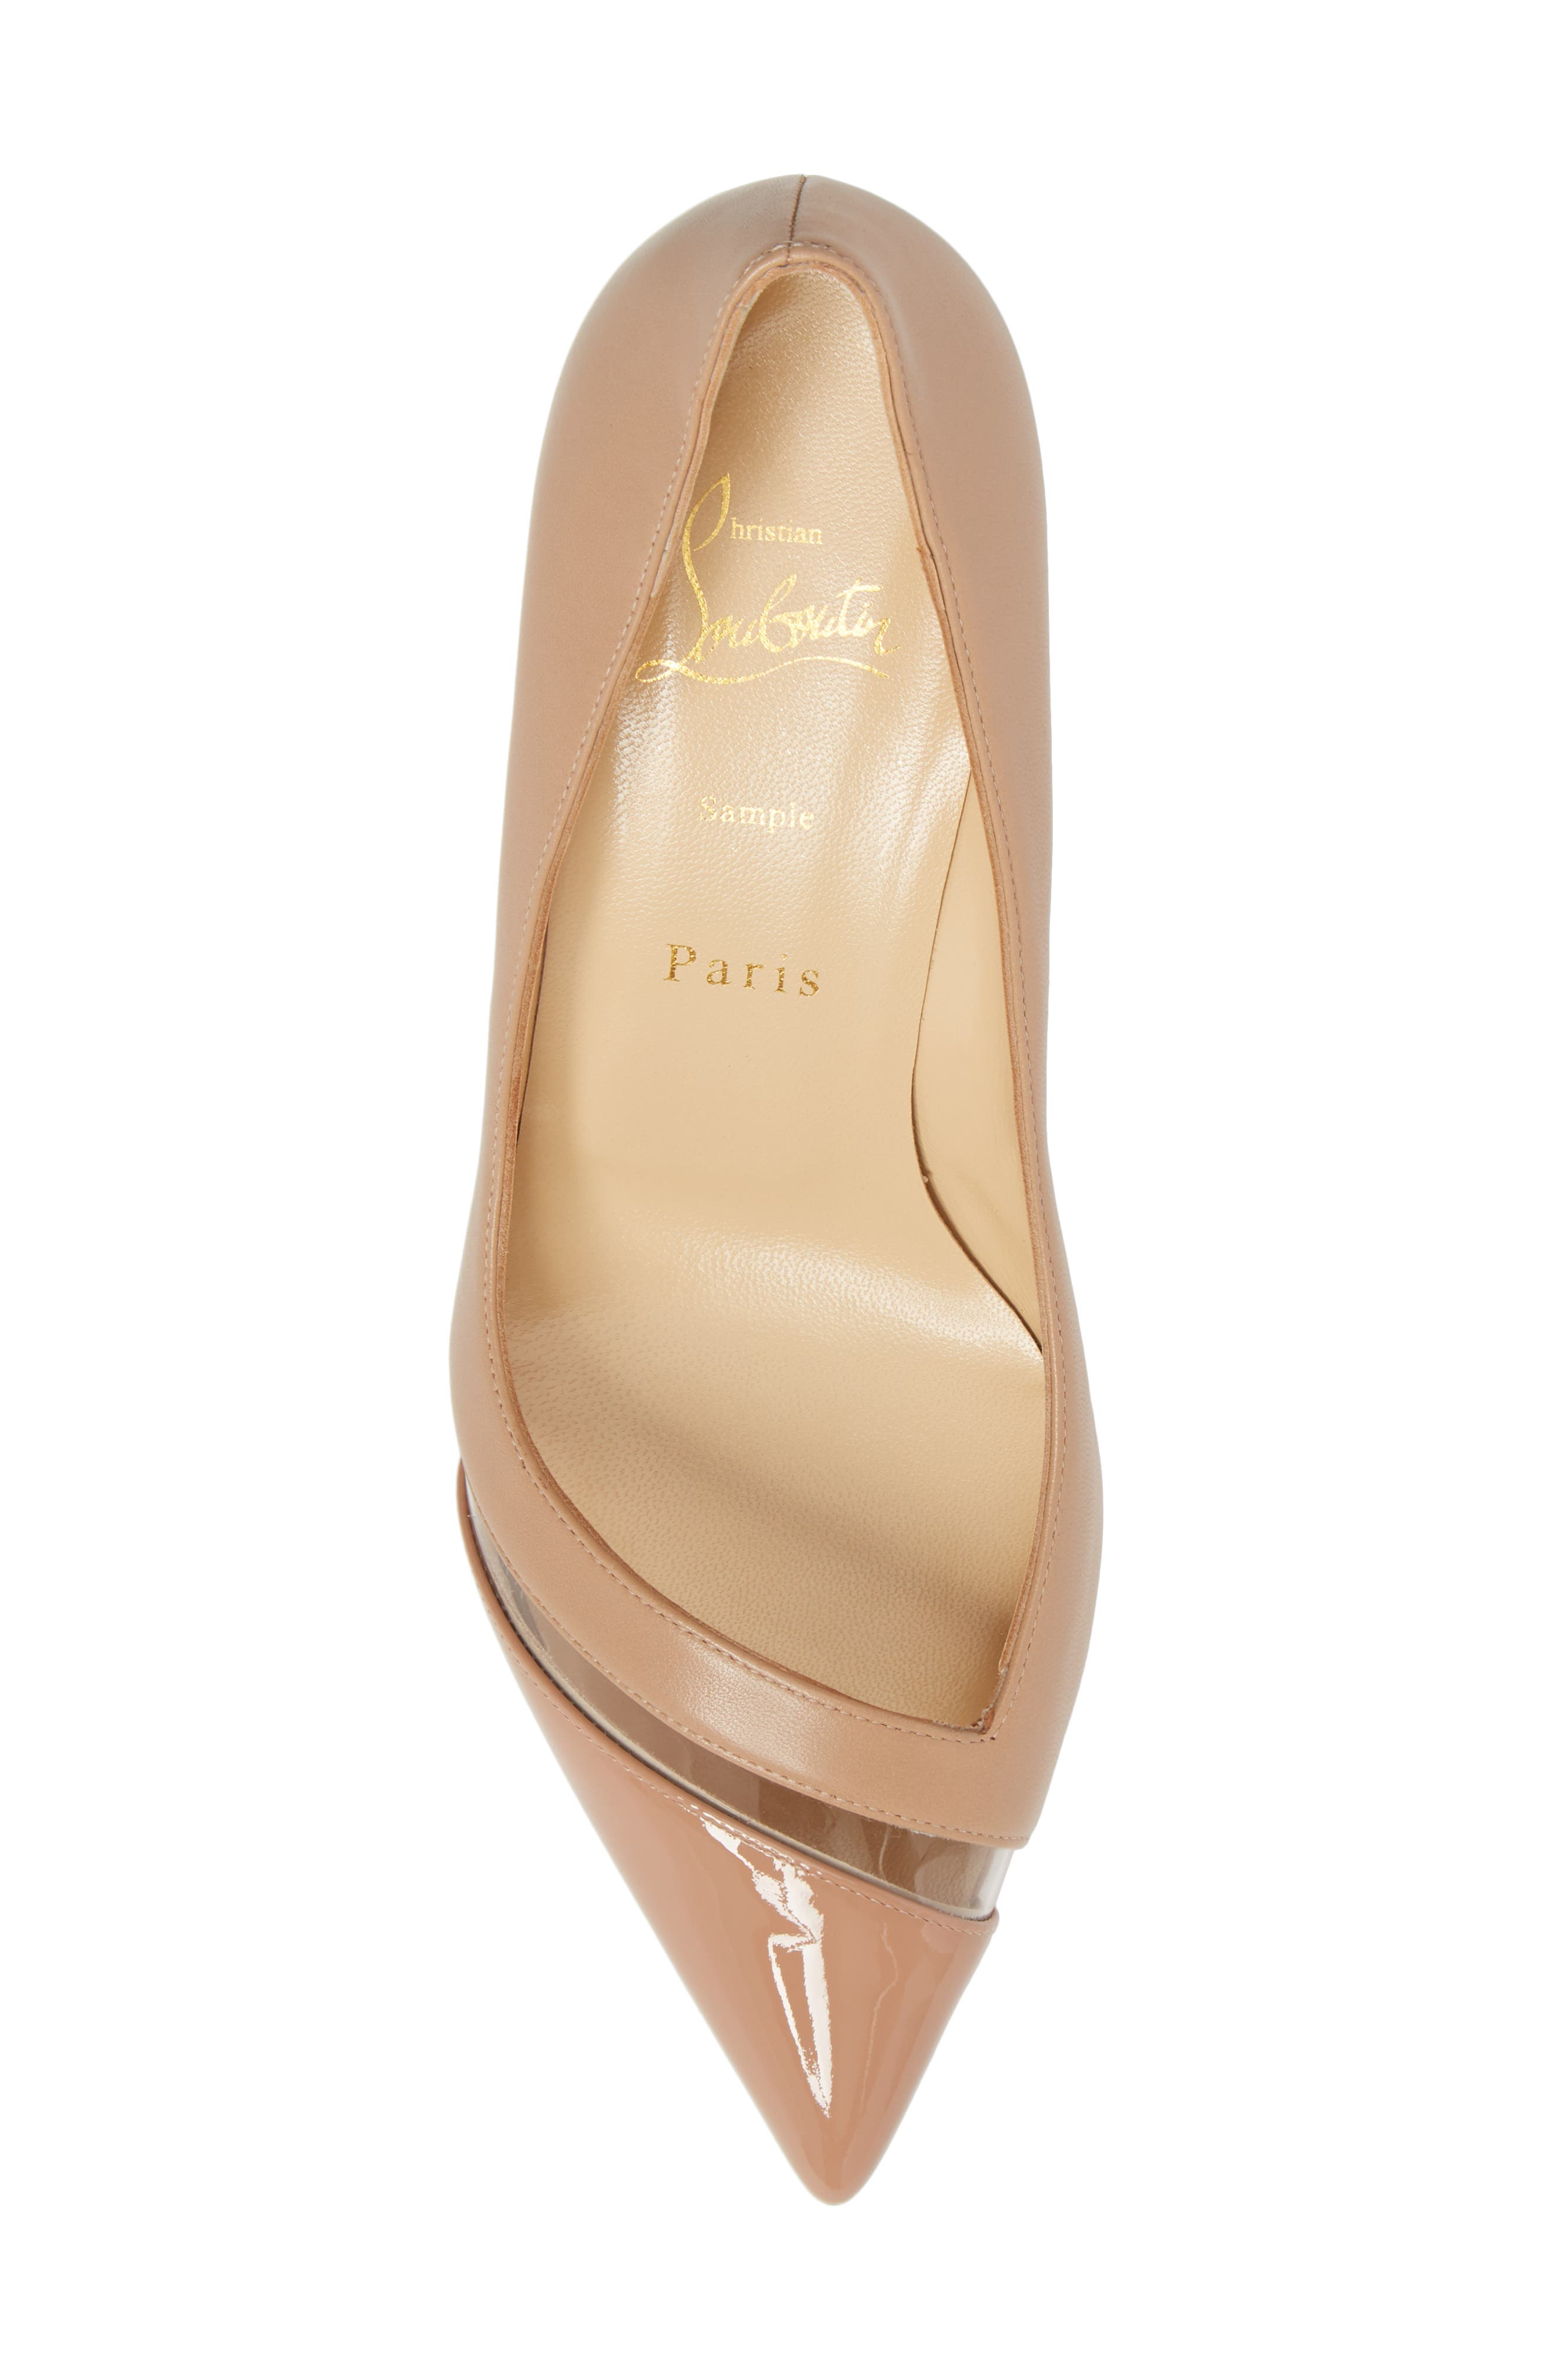 17th Floor Pointy Toe Pump,                             Alternate thumbnail 5, color,                             Nude